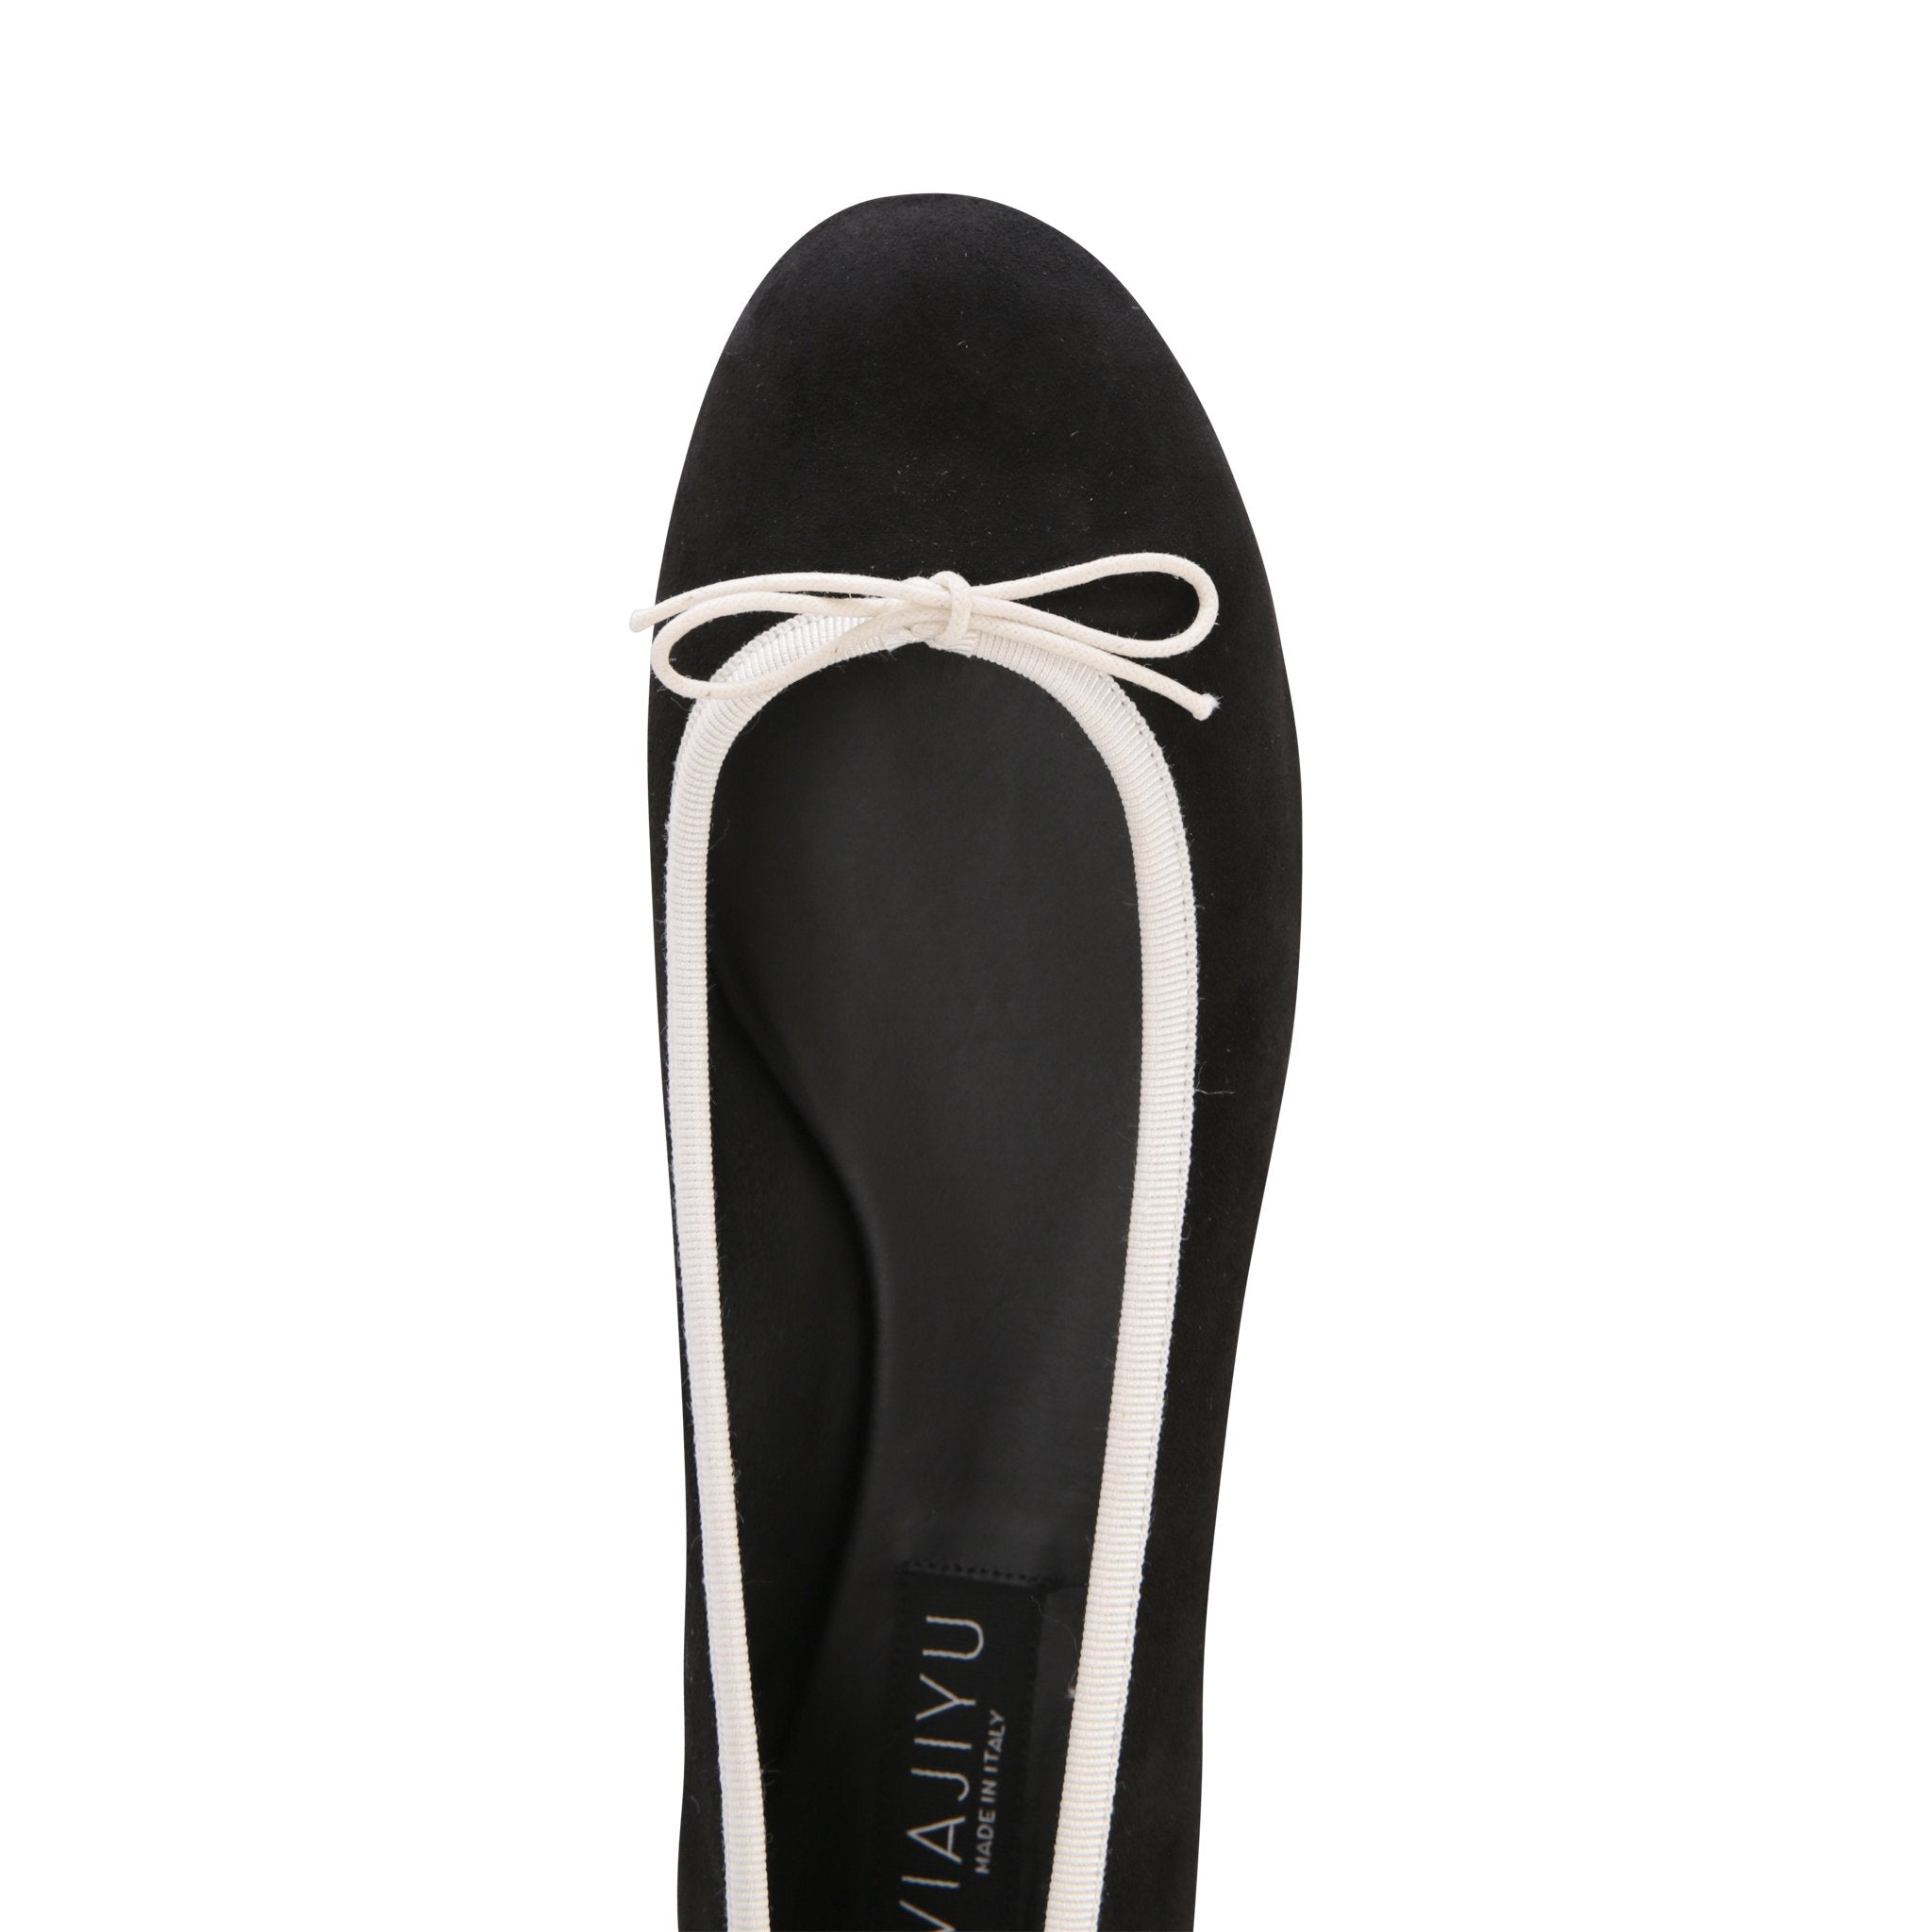 VENEZIA - Velukid Nero + Drawstring Panna Bow, VIAJIYU - Women's Hand Made Sustainable Luxury Shoes. Made in Italy. Made to Order.